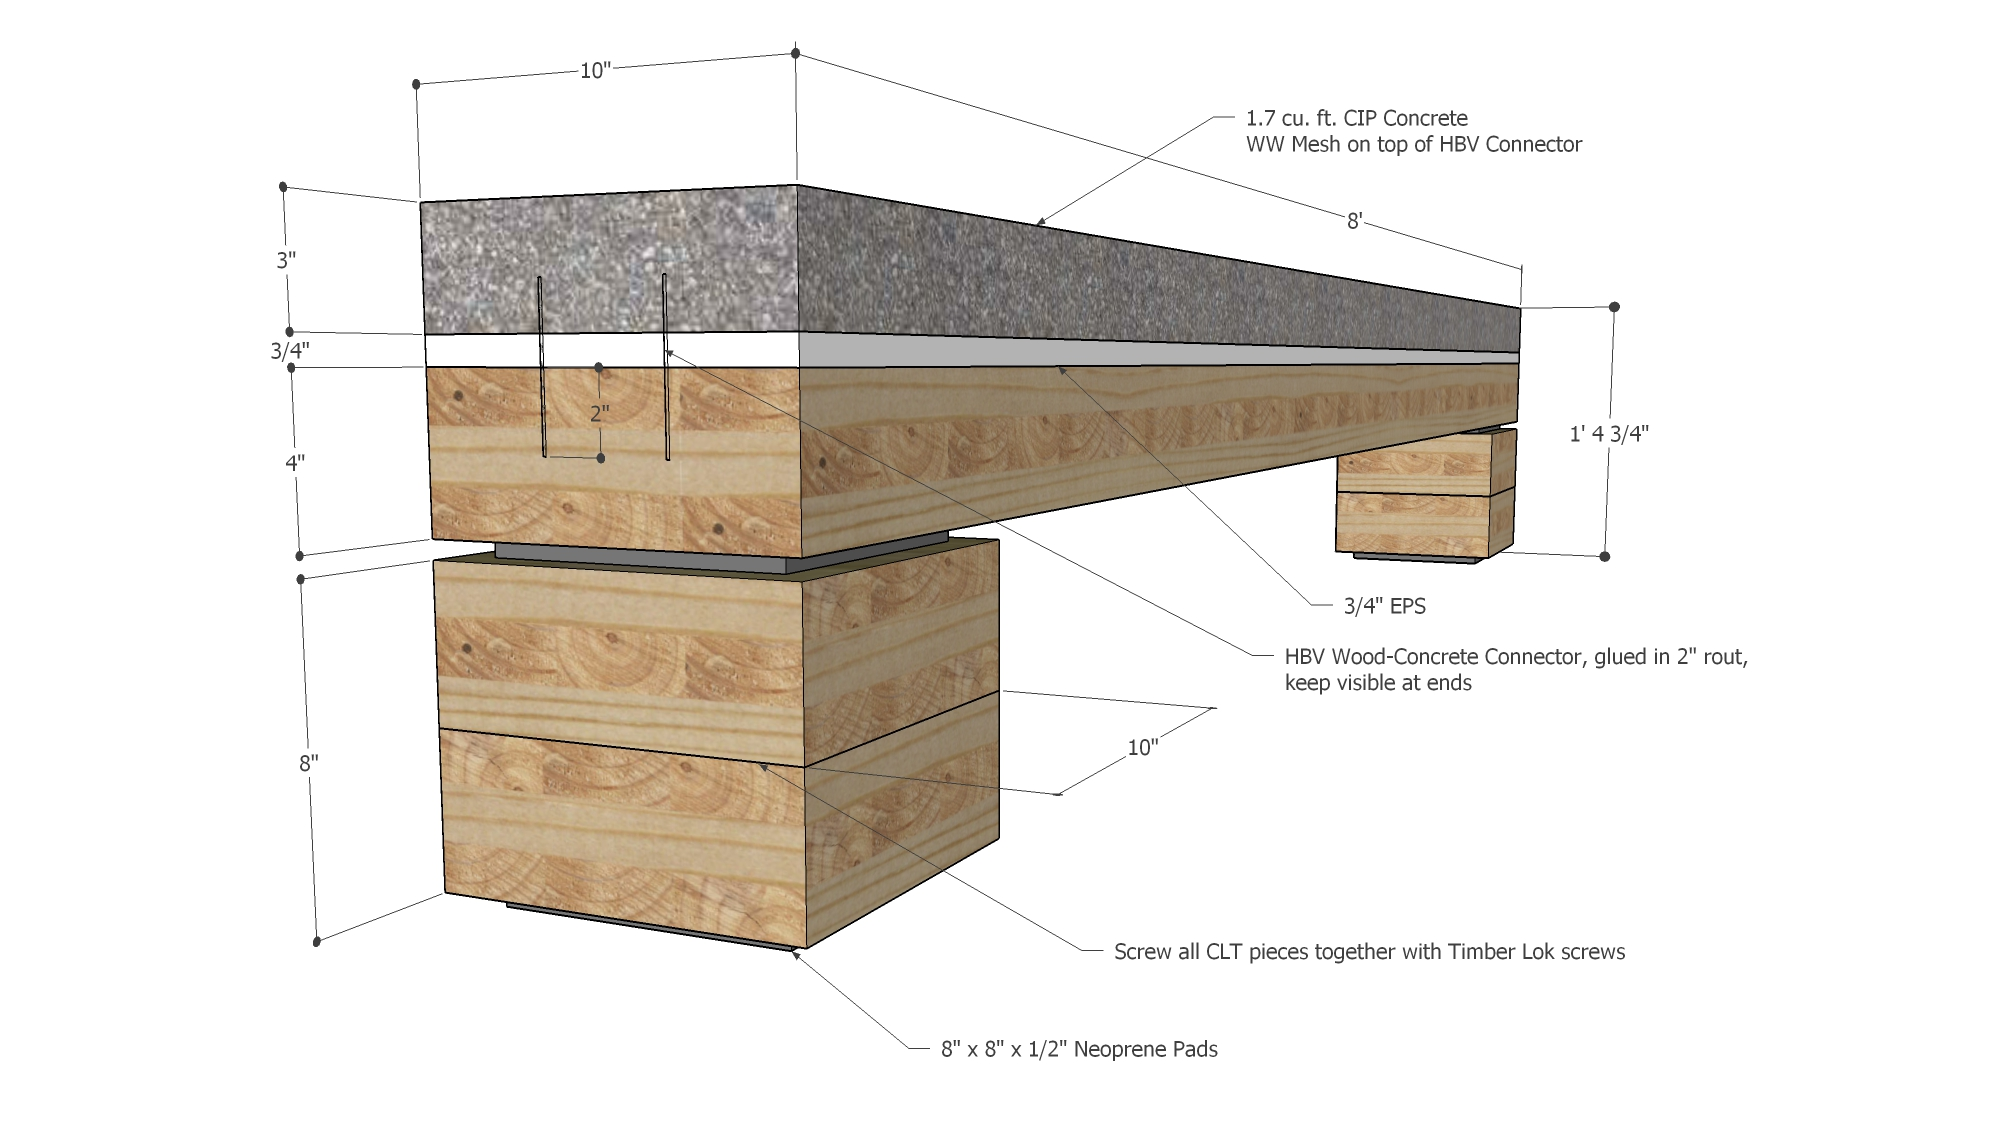 Building A Wood Concrete Composite Bench With Clts By As